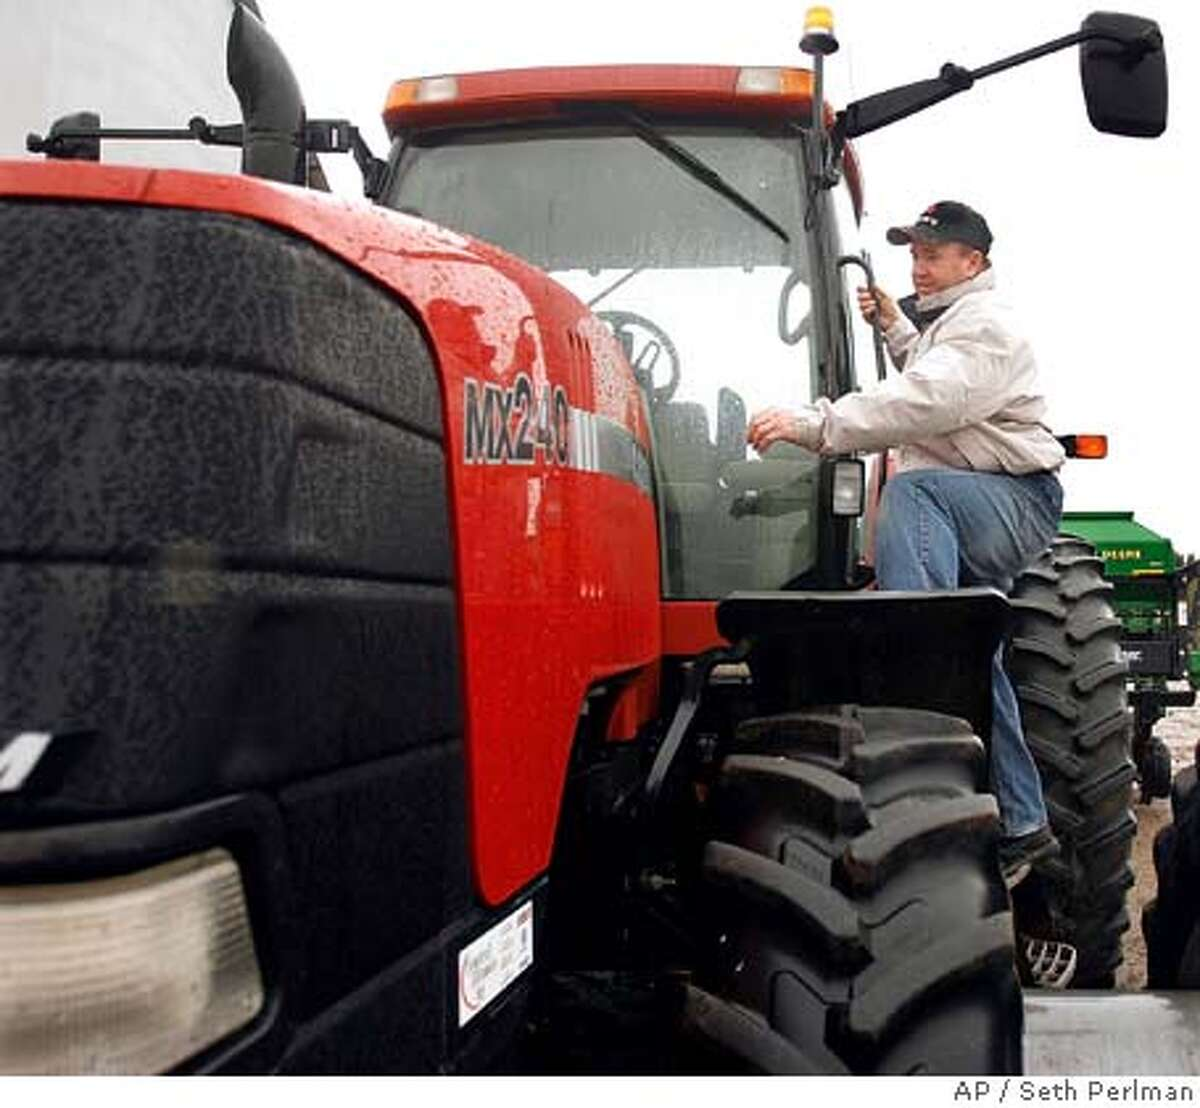 Cental Illinois corn and soybean farmer Larry Gleason inspects one of his tractors on his farm in Elkhart, Ill., Monday, March 31, 2008. The U.S. Department of Agriculture expects Illinois farmers to plant less corn this spring and more soybeans, following a national trend. (AP Photo/Seth Perlman)